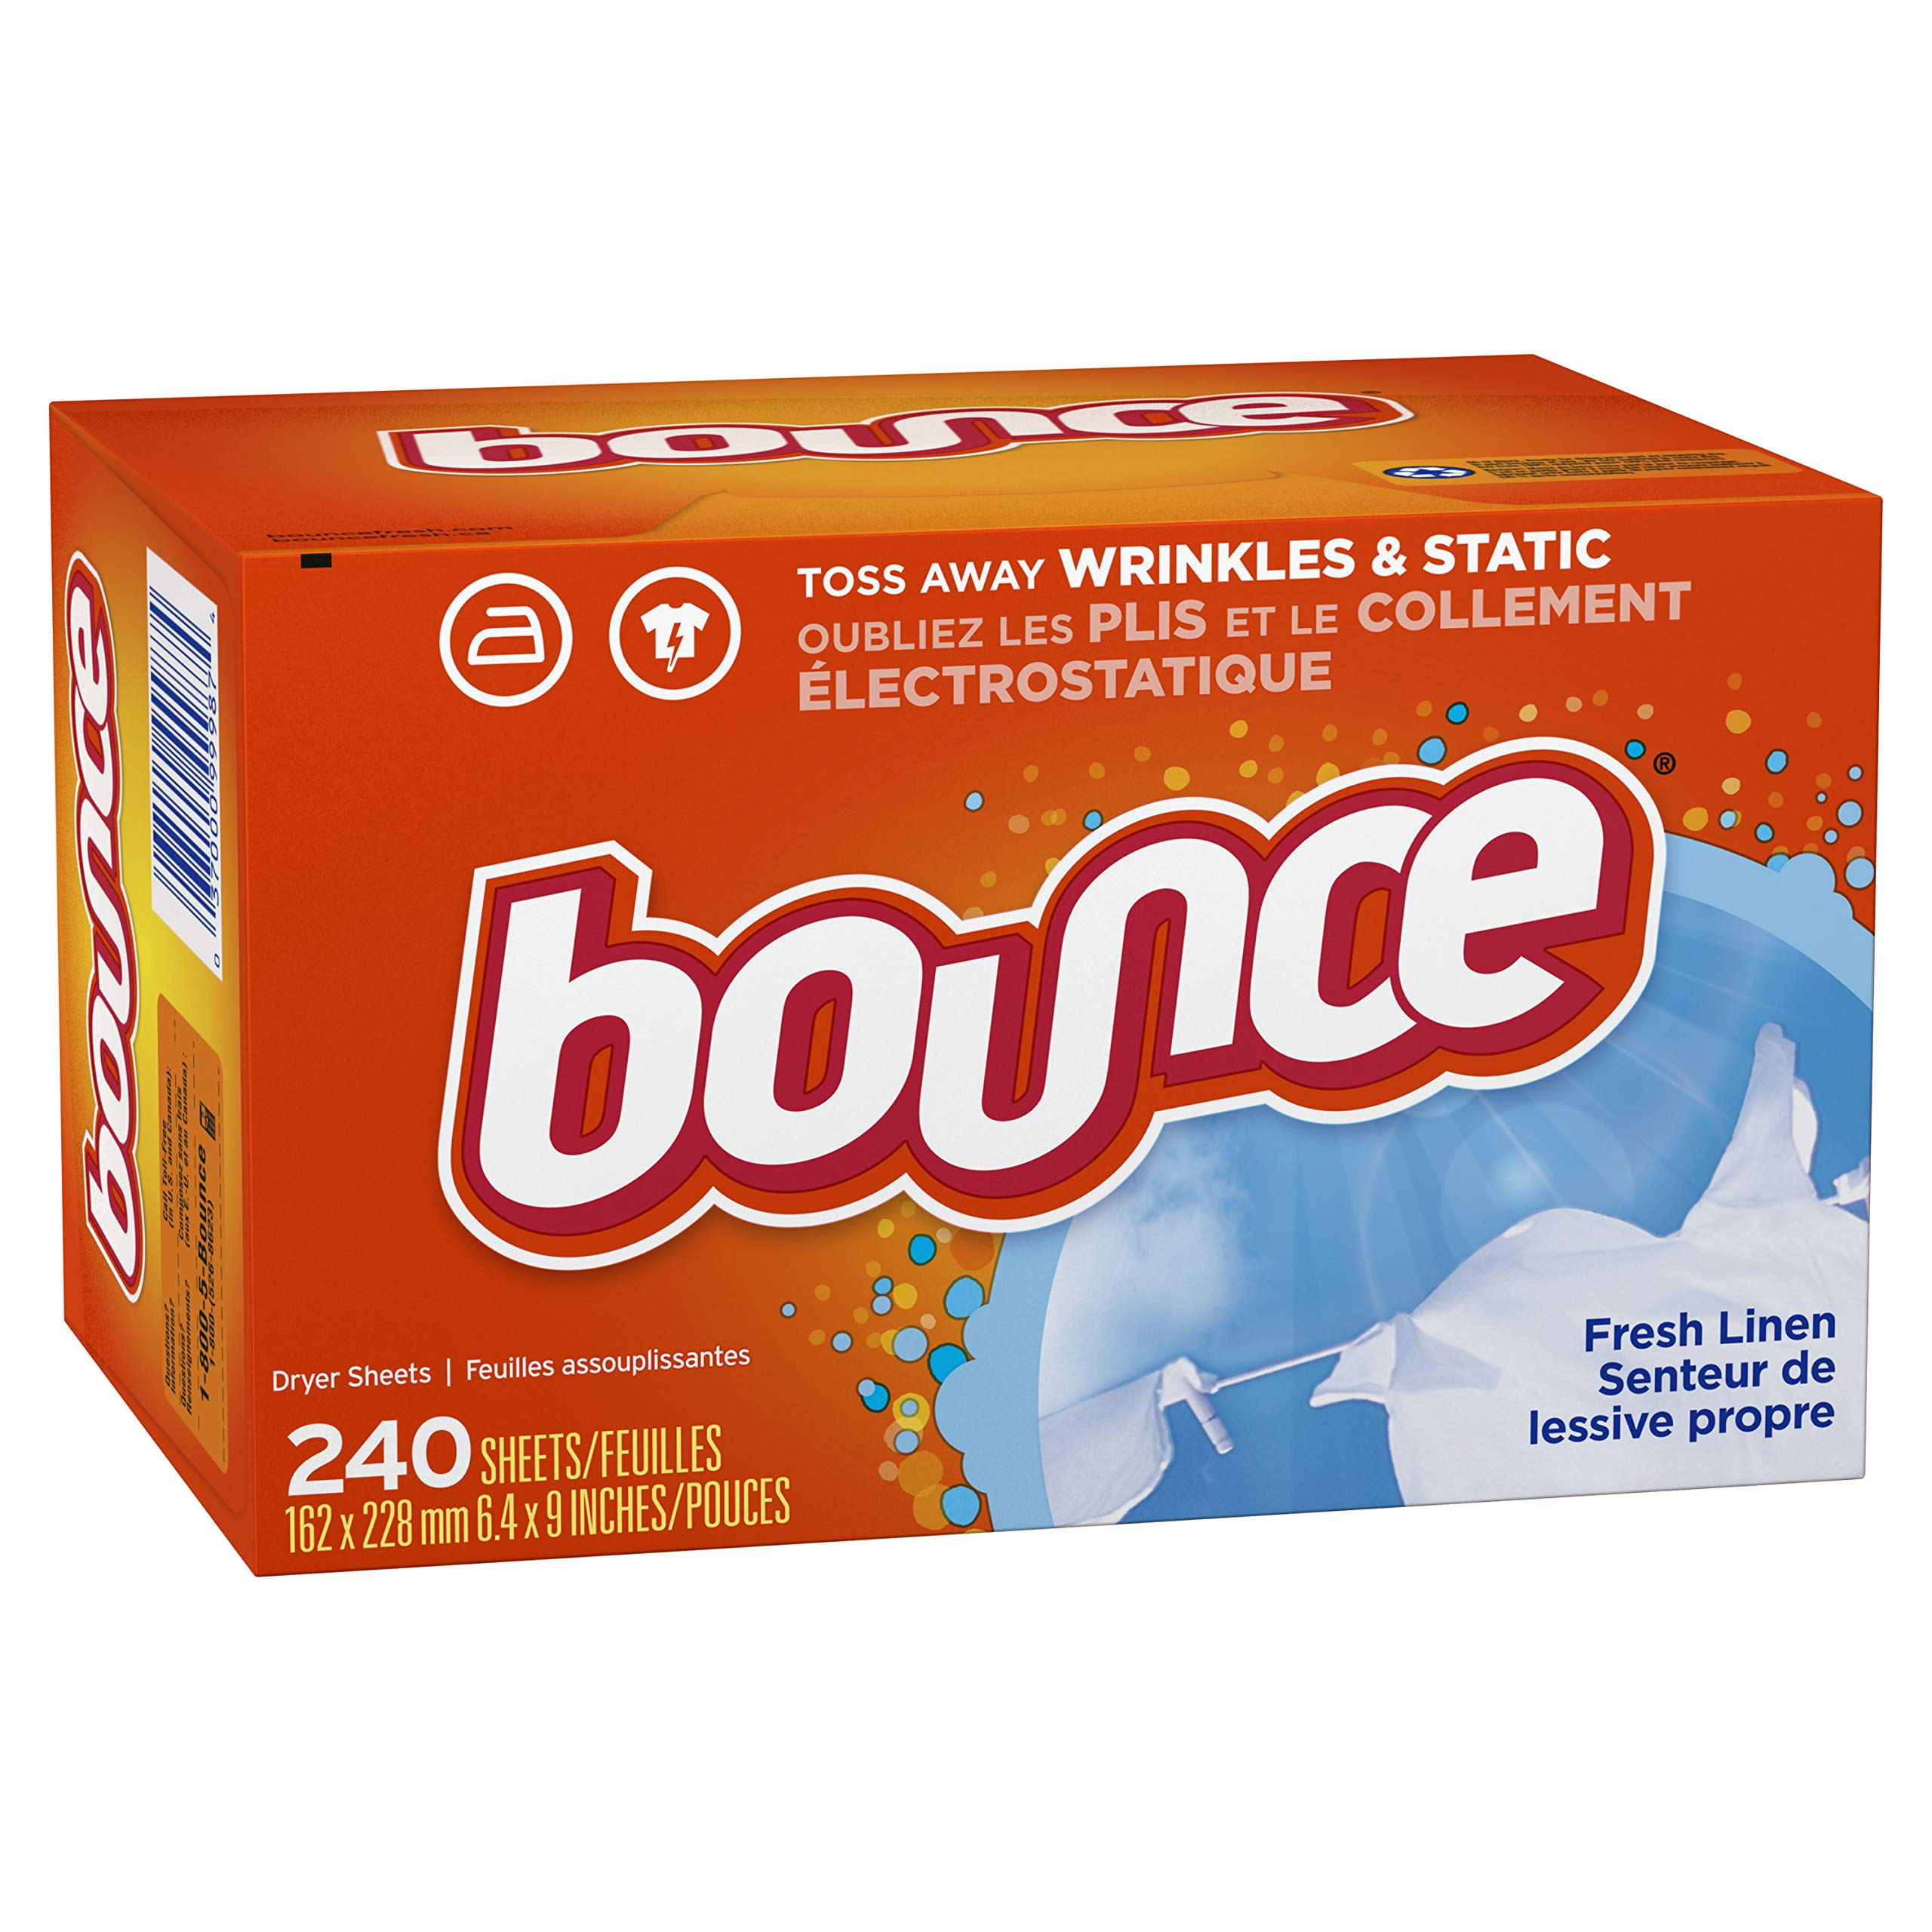 Bounce Fresh Linen Scented Fabric Softener Dryer Sheets, 240 Count (3 Pack(240 Count))